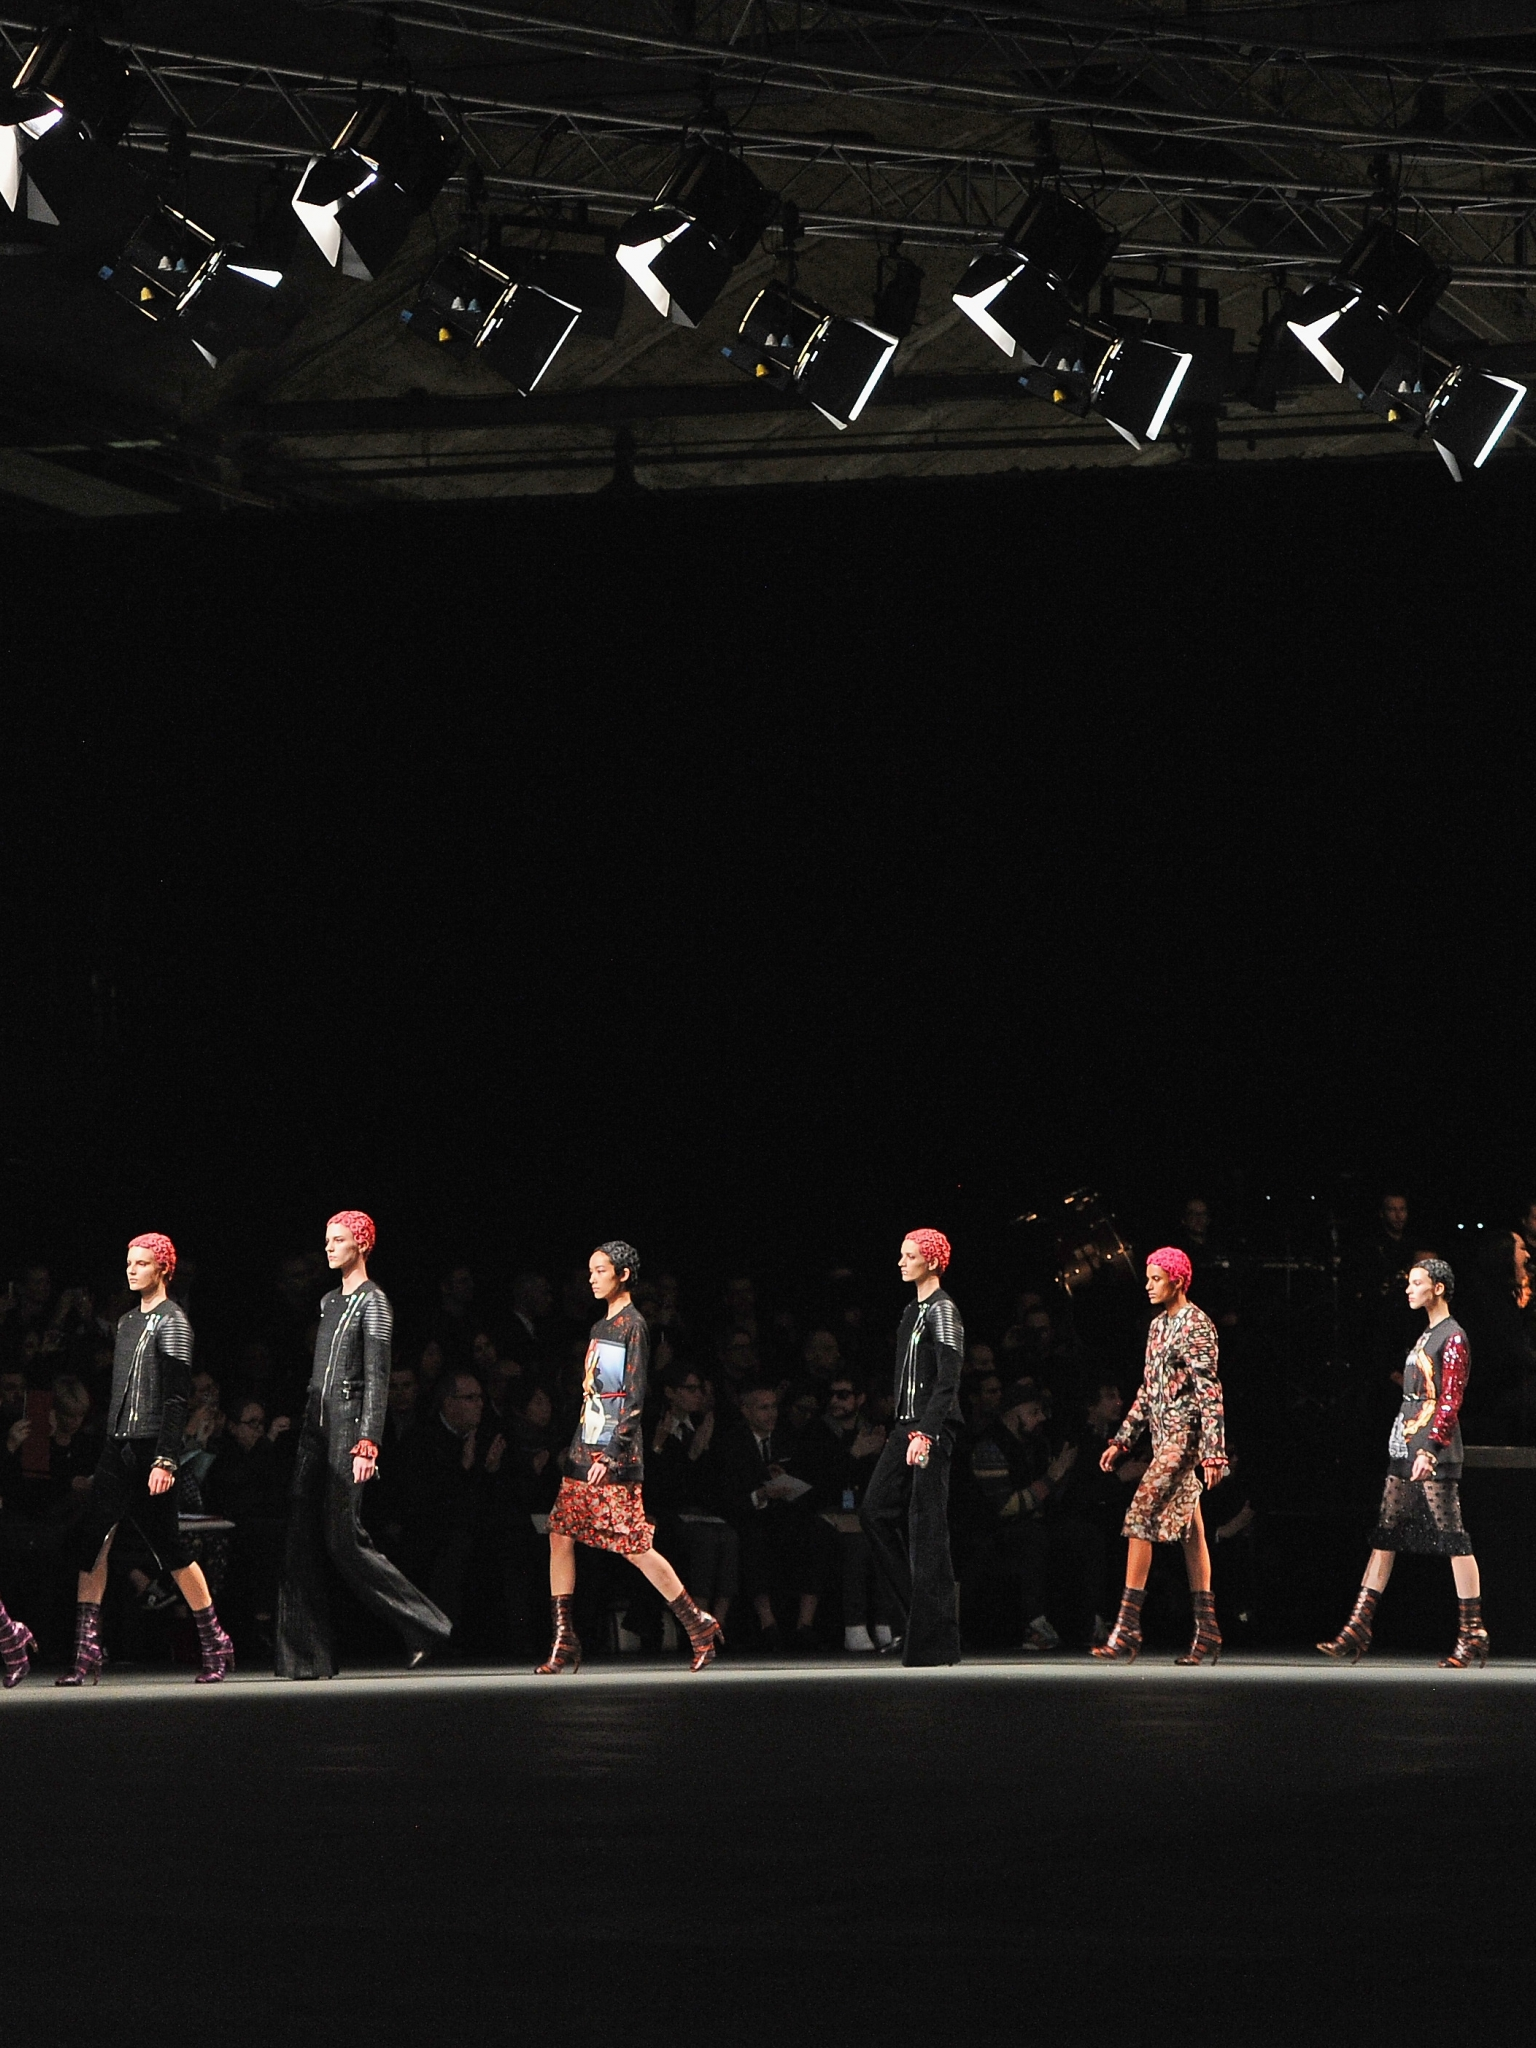 download Givenchy fashion show wallpapers and images 1536x2048